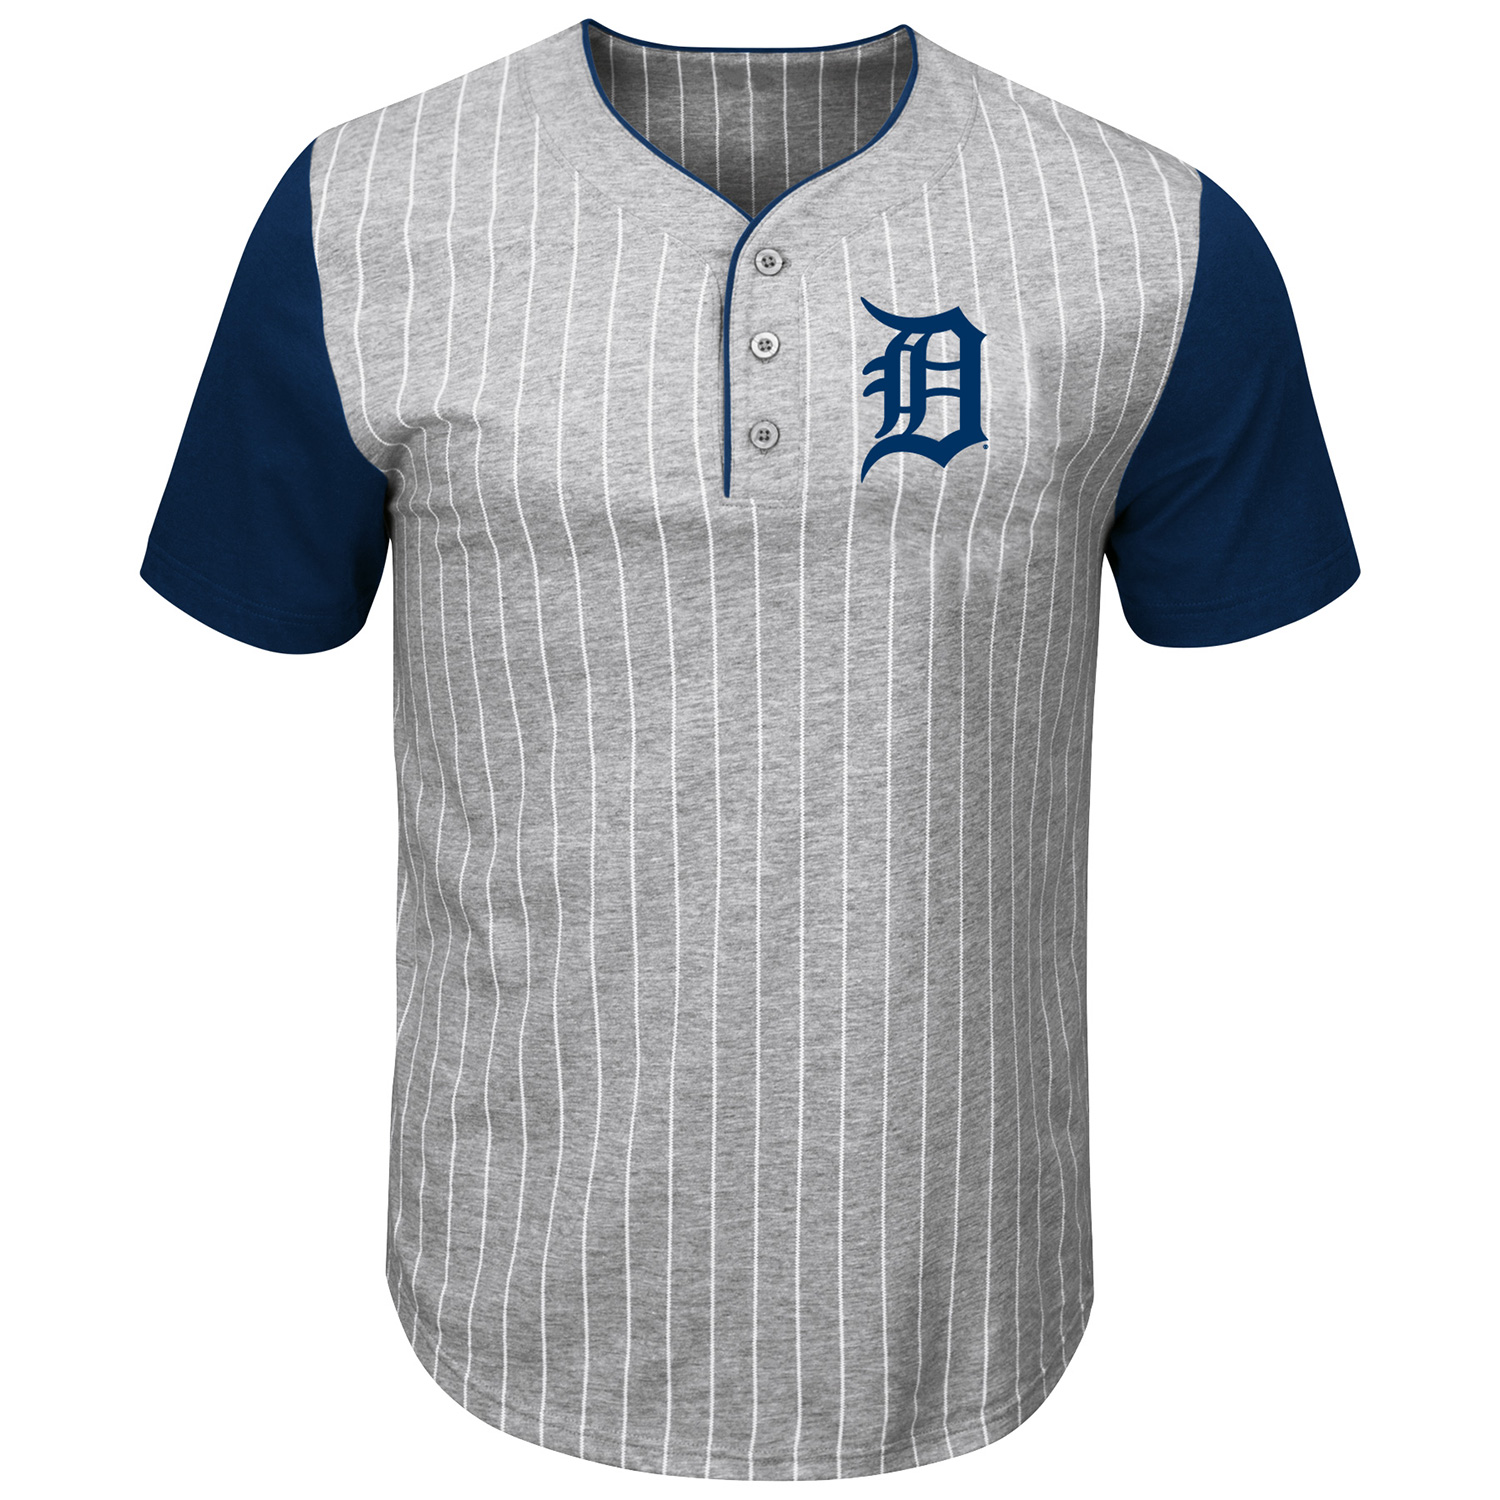 Detroit Tigers Majestic Life Or Death Pinstripe Henley T-Shirt - Gray/Navy